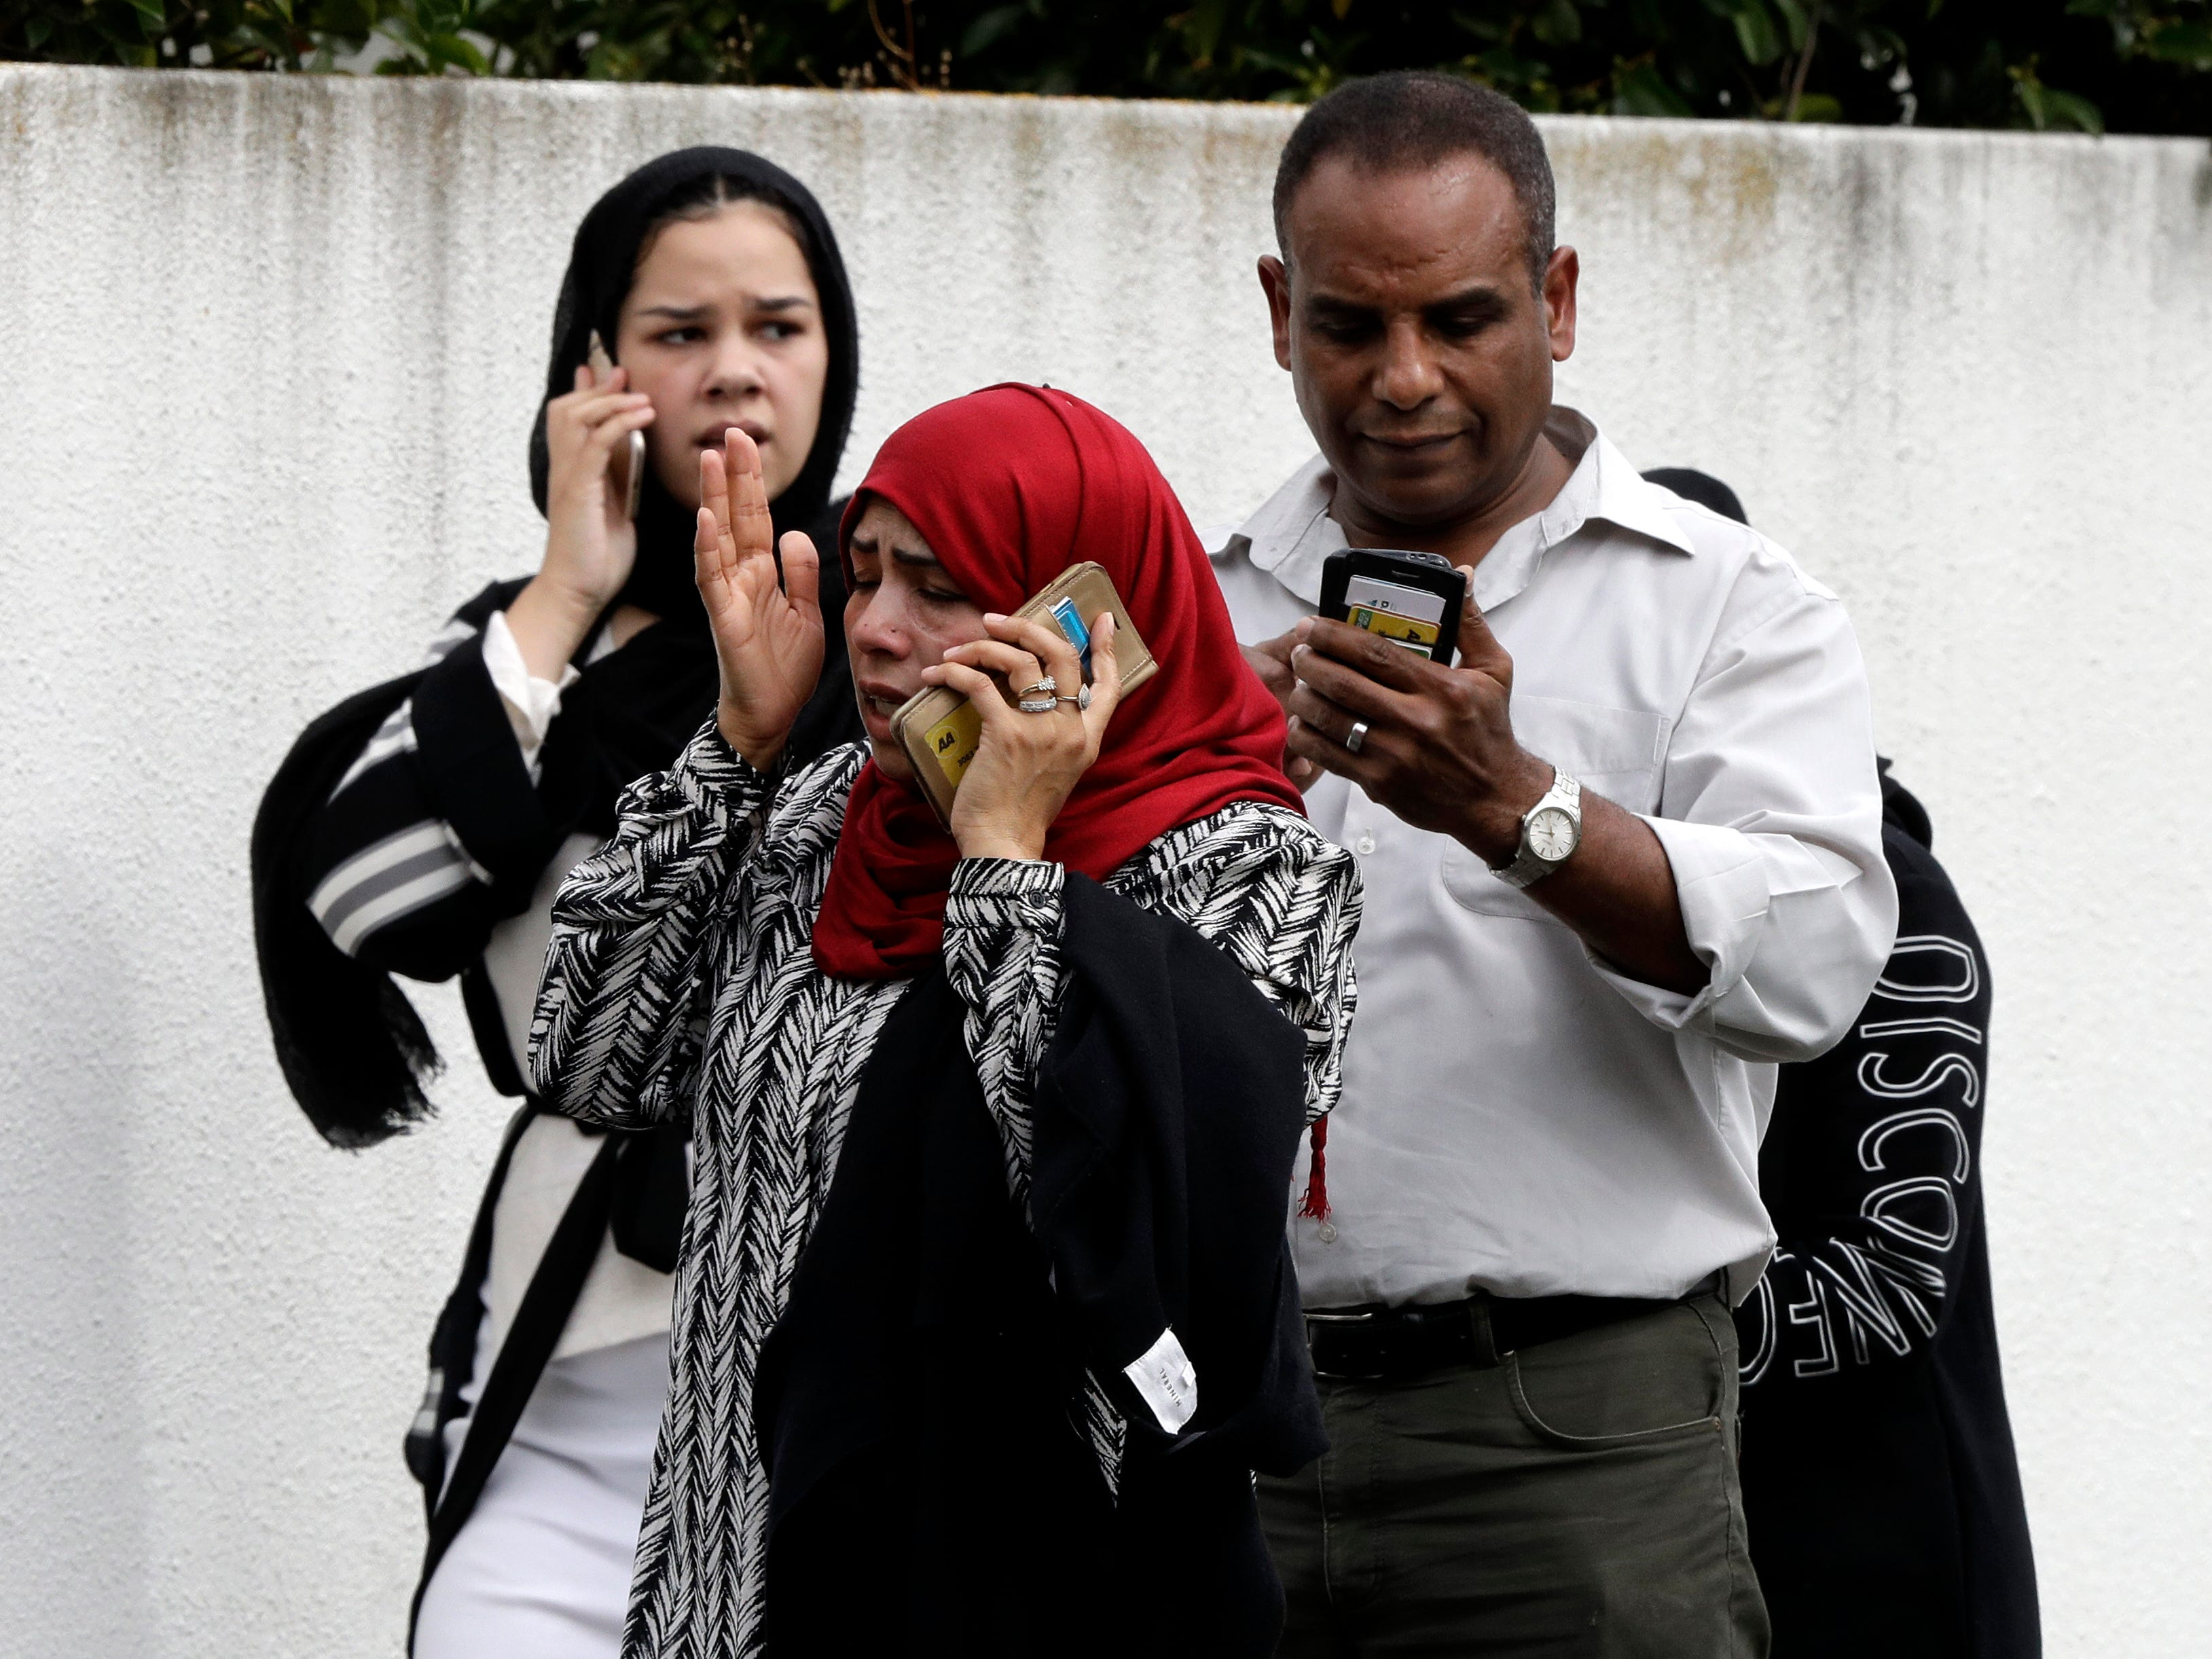 After New Zealand mosque attack, I won't watch the news coverage of another mass shooting